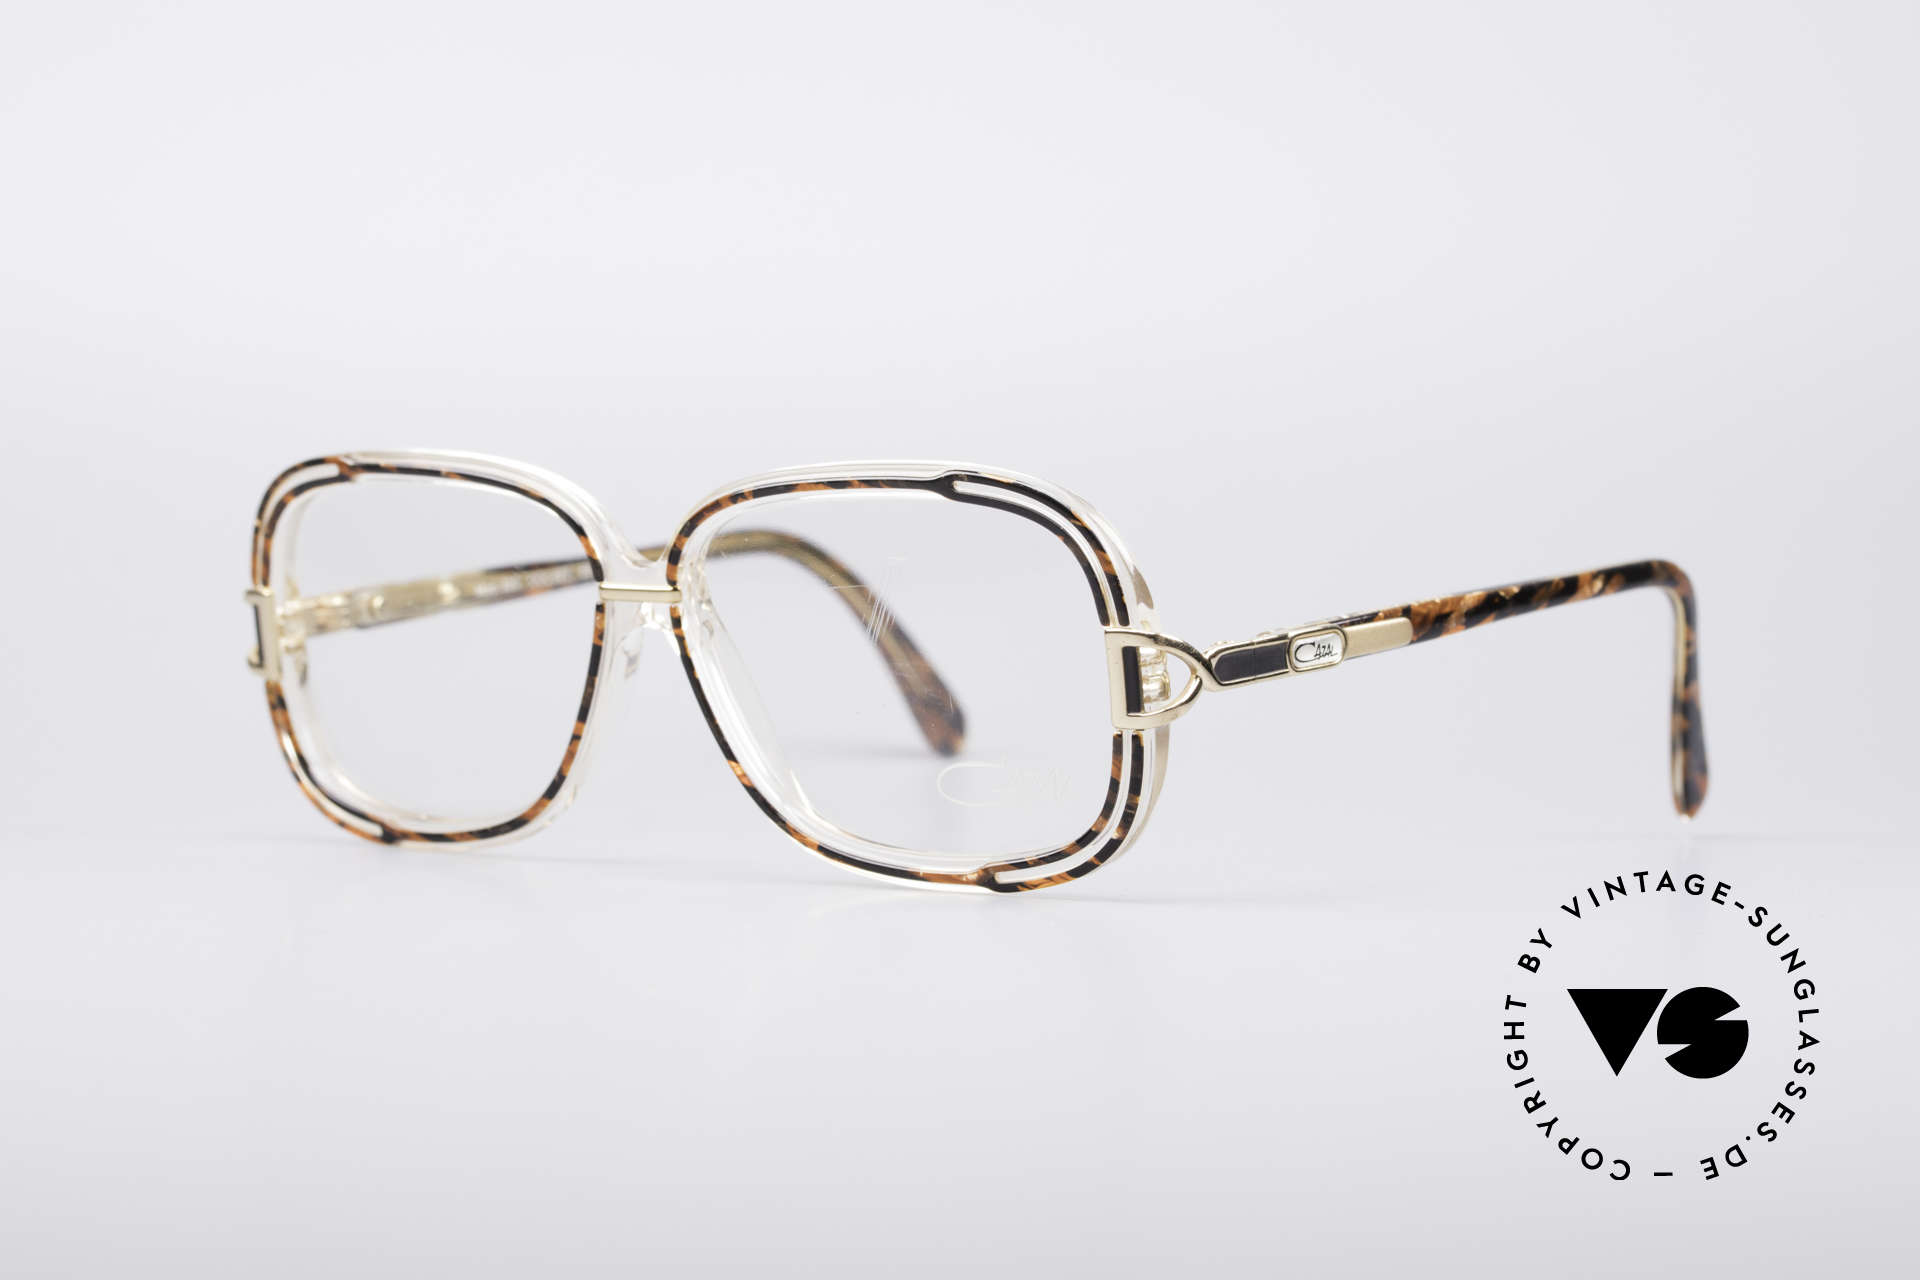 Cazal 320 80's West Germany Frame, really unique and pretty hard to find, in these days, Made for Women